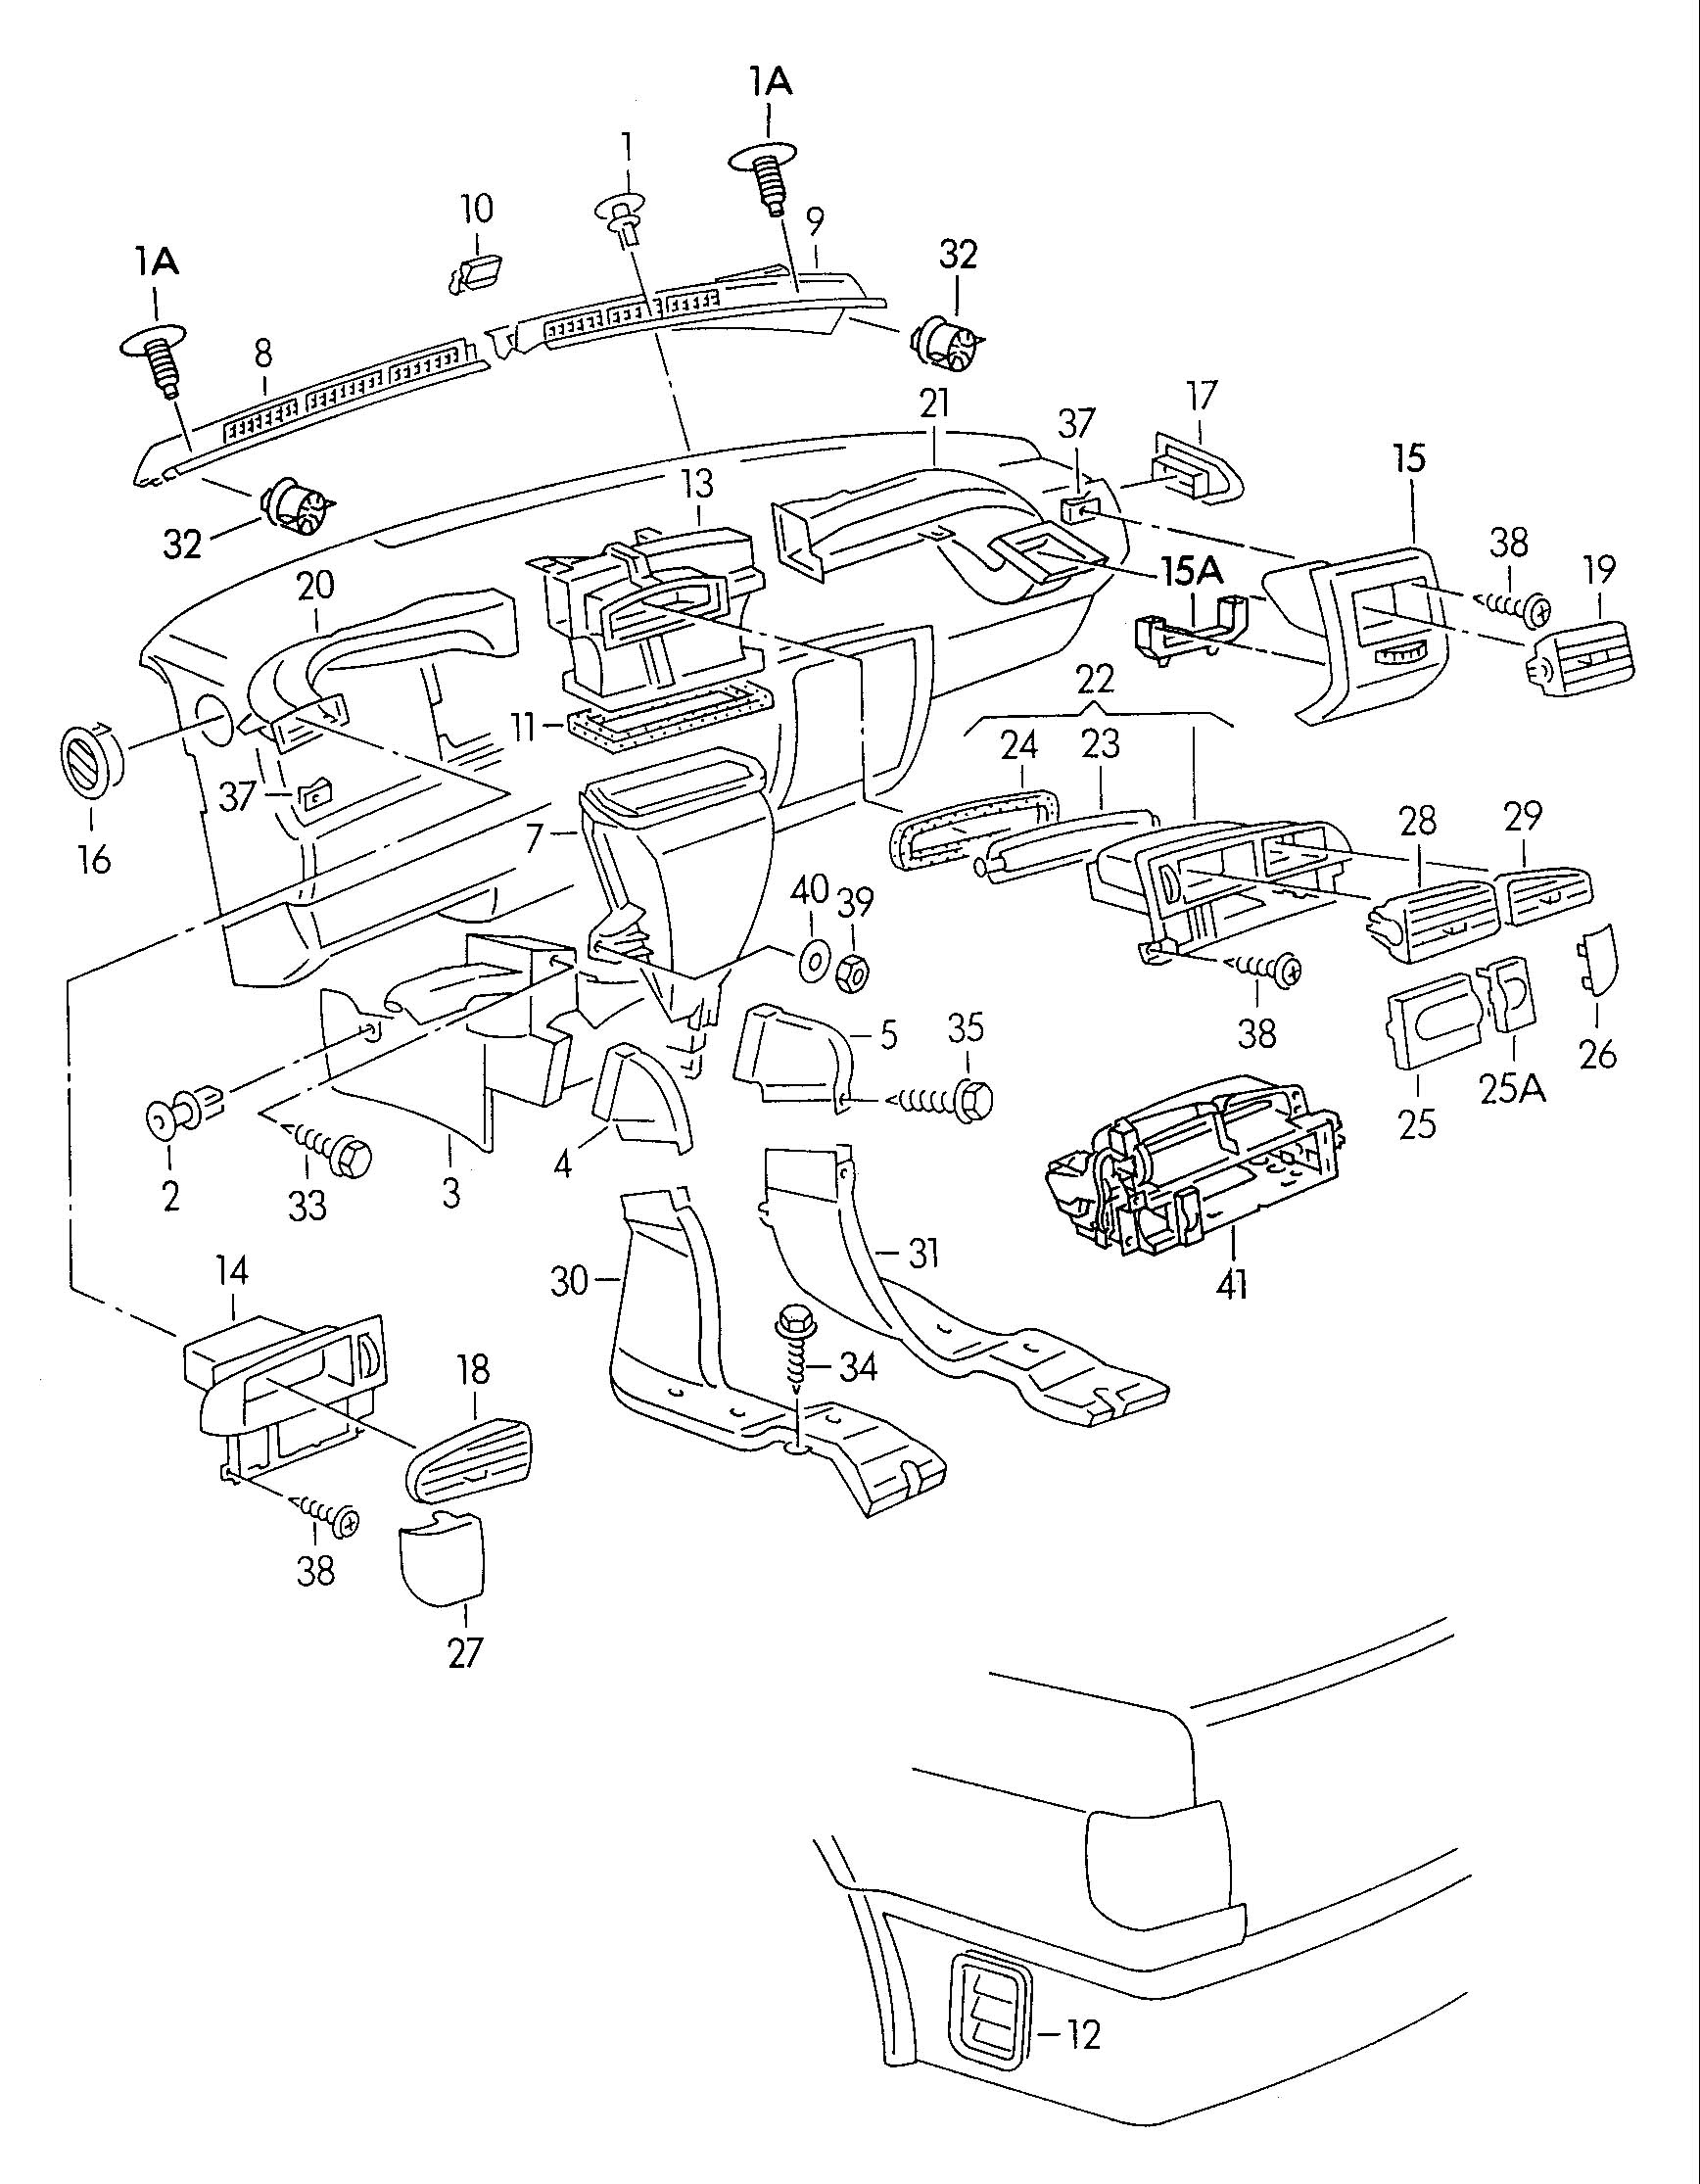 2000 Vw Cabrio Convertible Fuse Box. Diagram. Auto Wiring